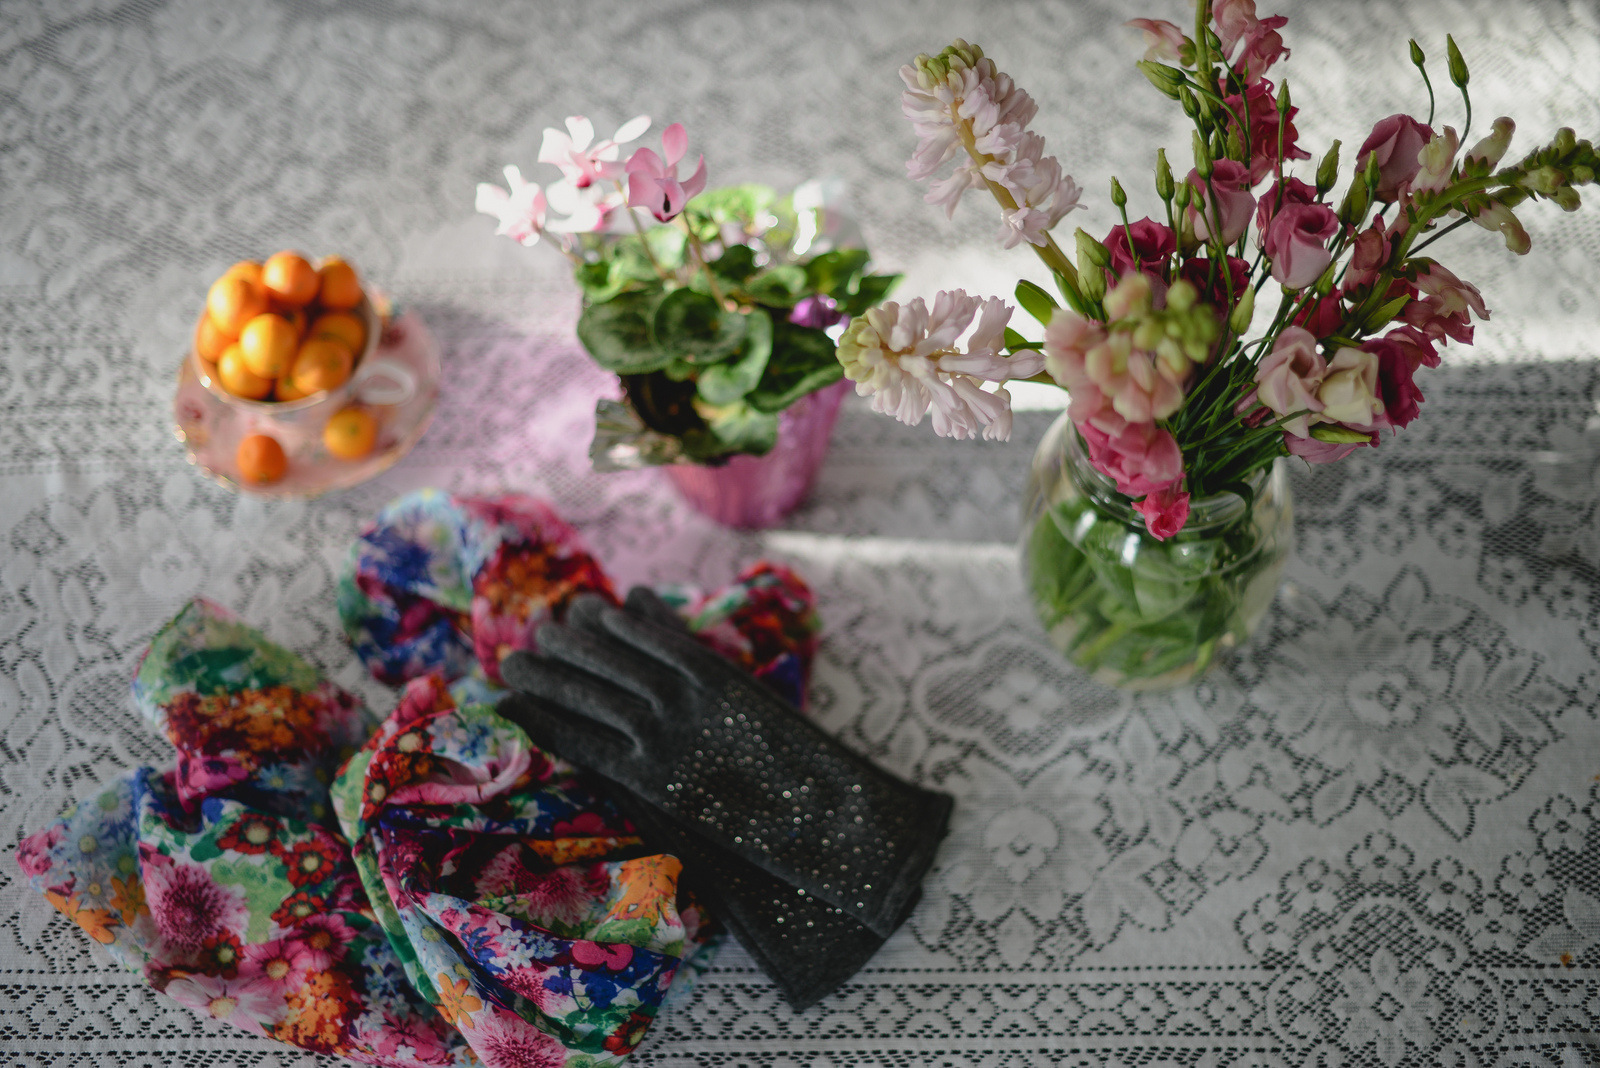 flowers, scarf, gloves